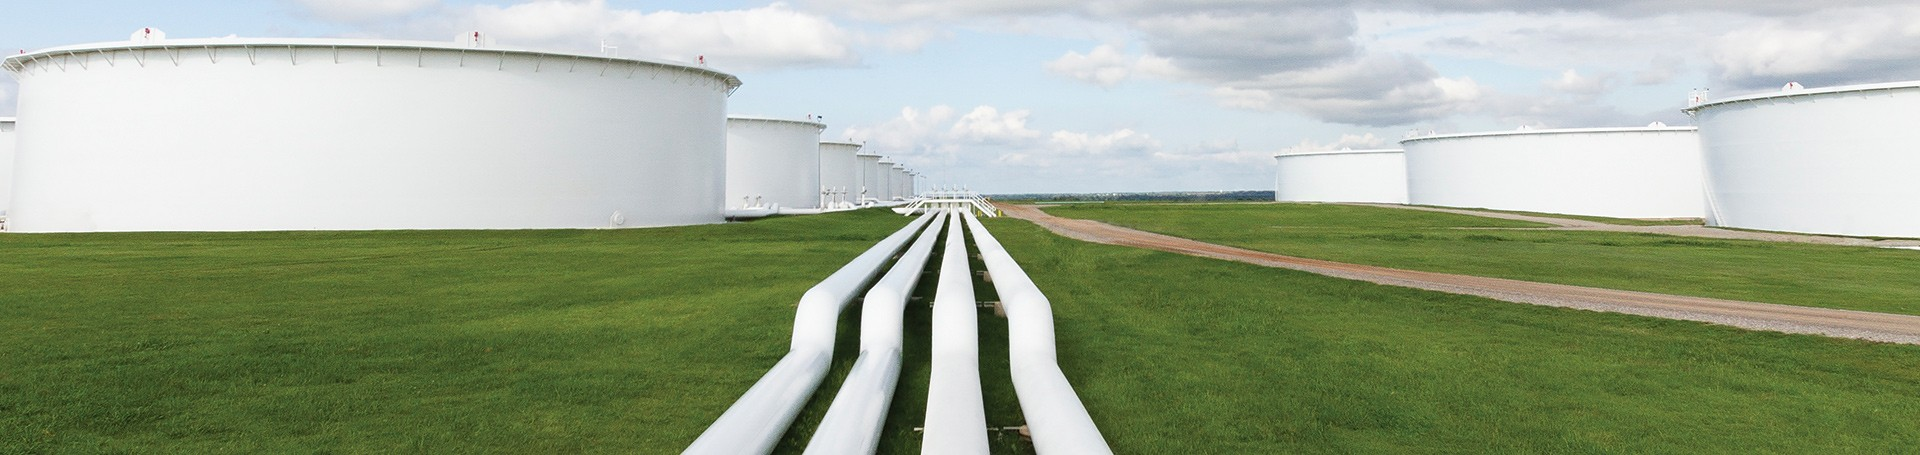 Plains safely operates 8 crude-by-rail terminals throughout the U.S.